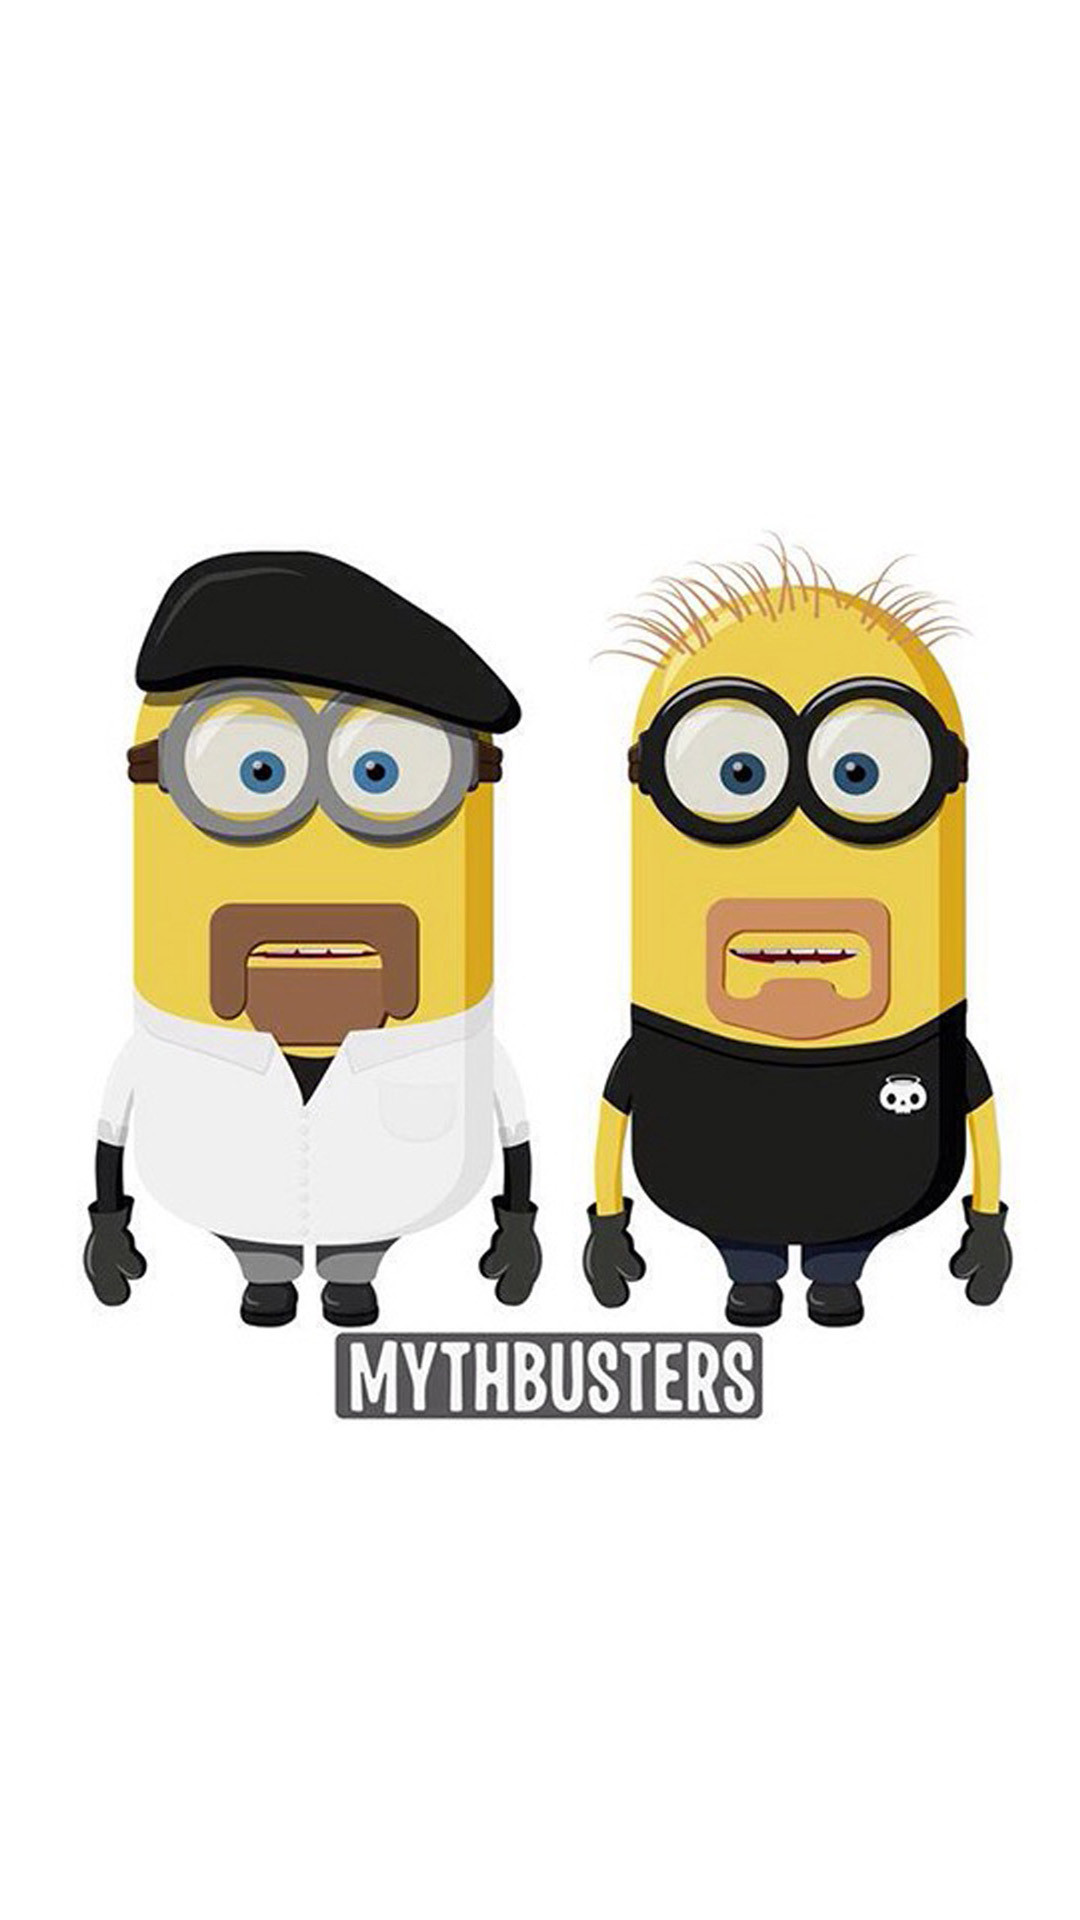 Mythbusters Minions Wallpapers for Galaxy S5